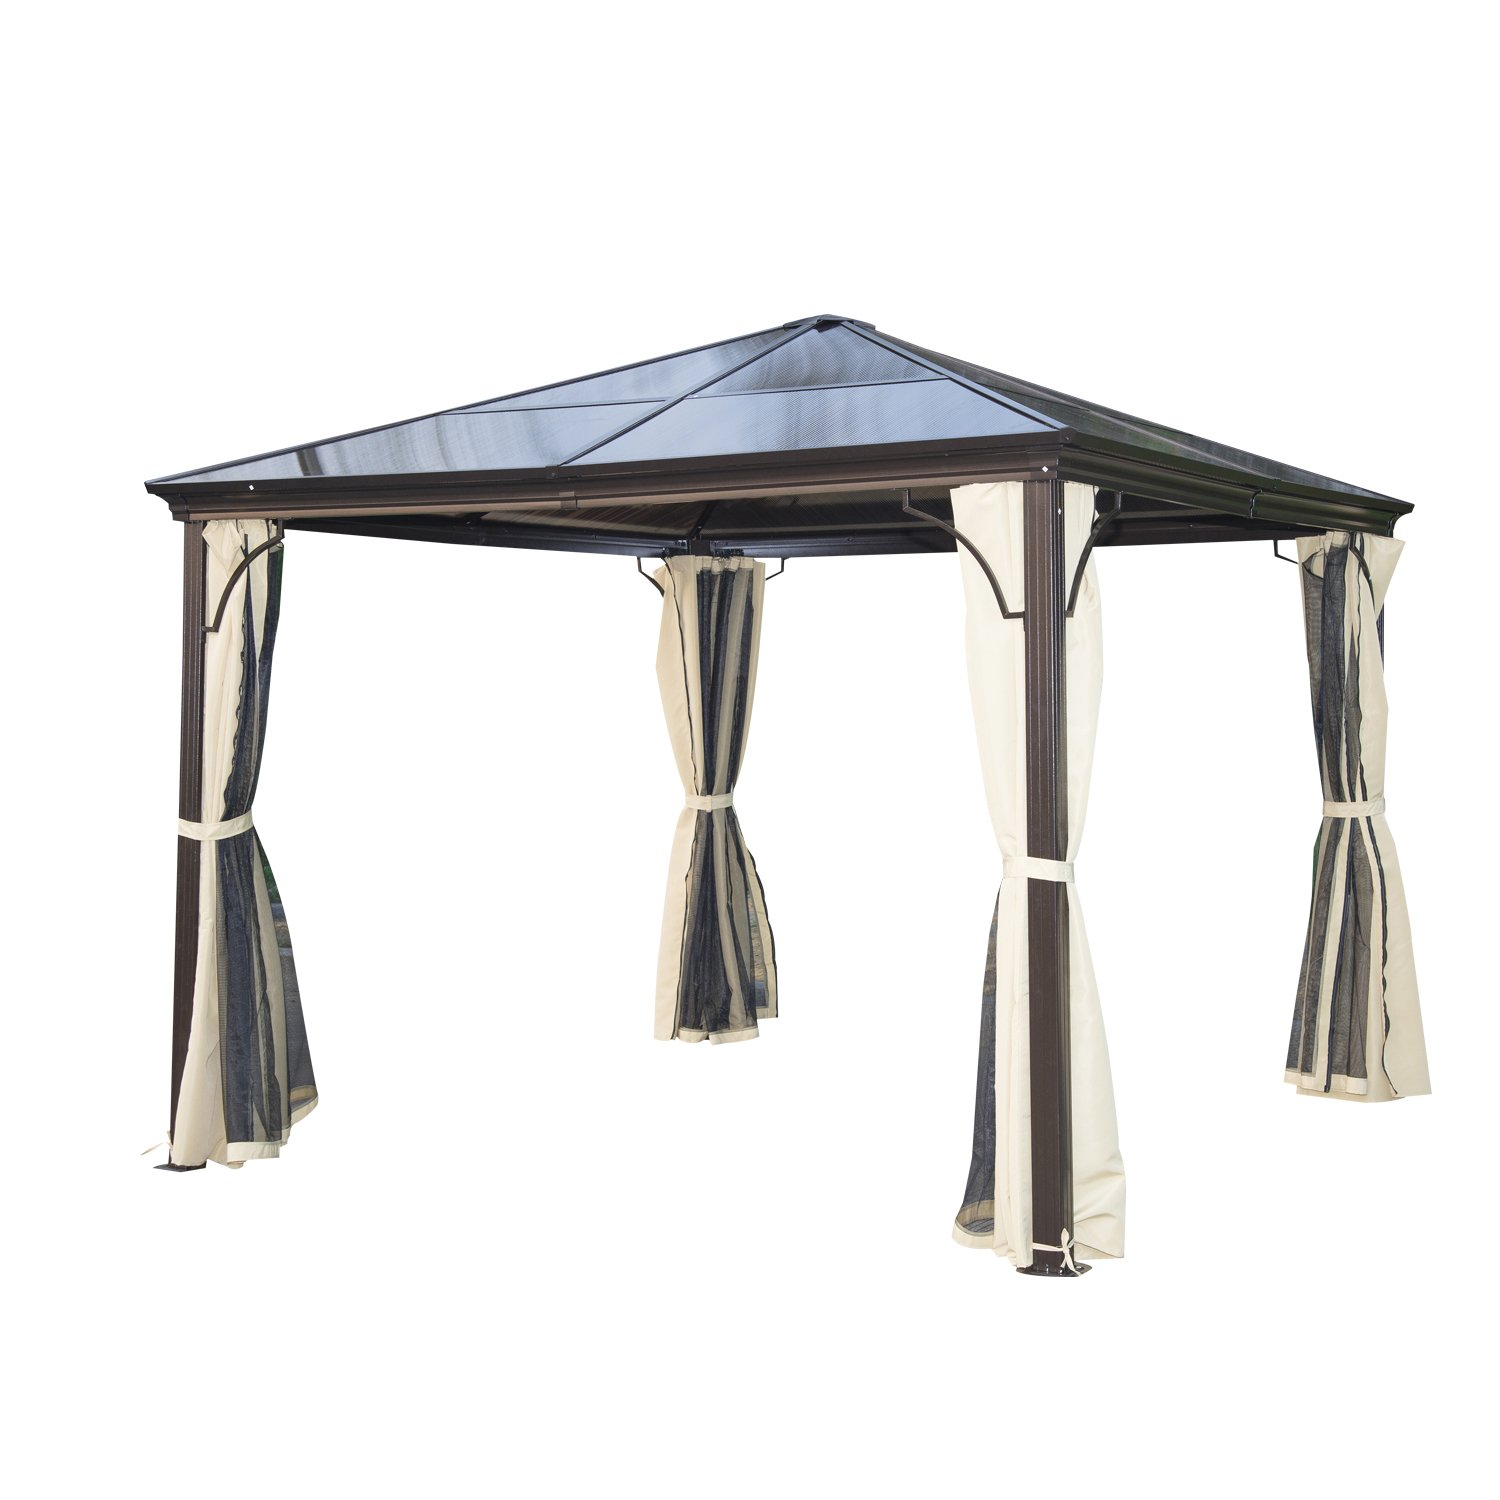 Outsunny 10' x 10' Aluminum Hardtop Gazebo w/Curtains and Nets- Black/Brown/Beige